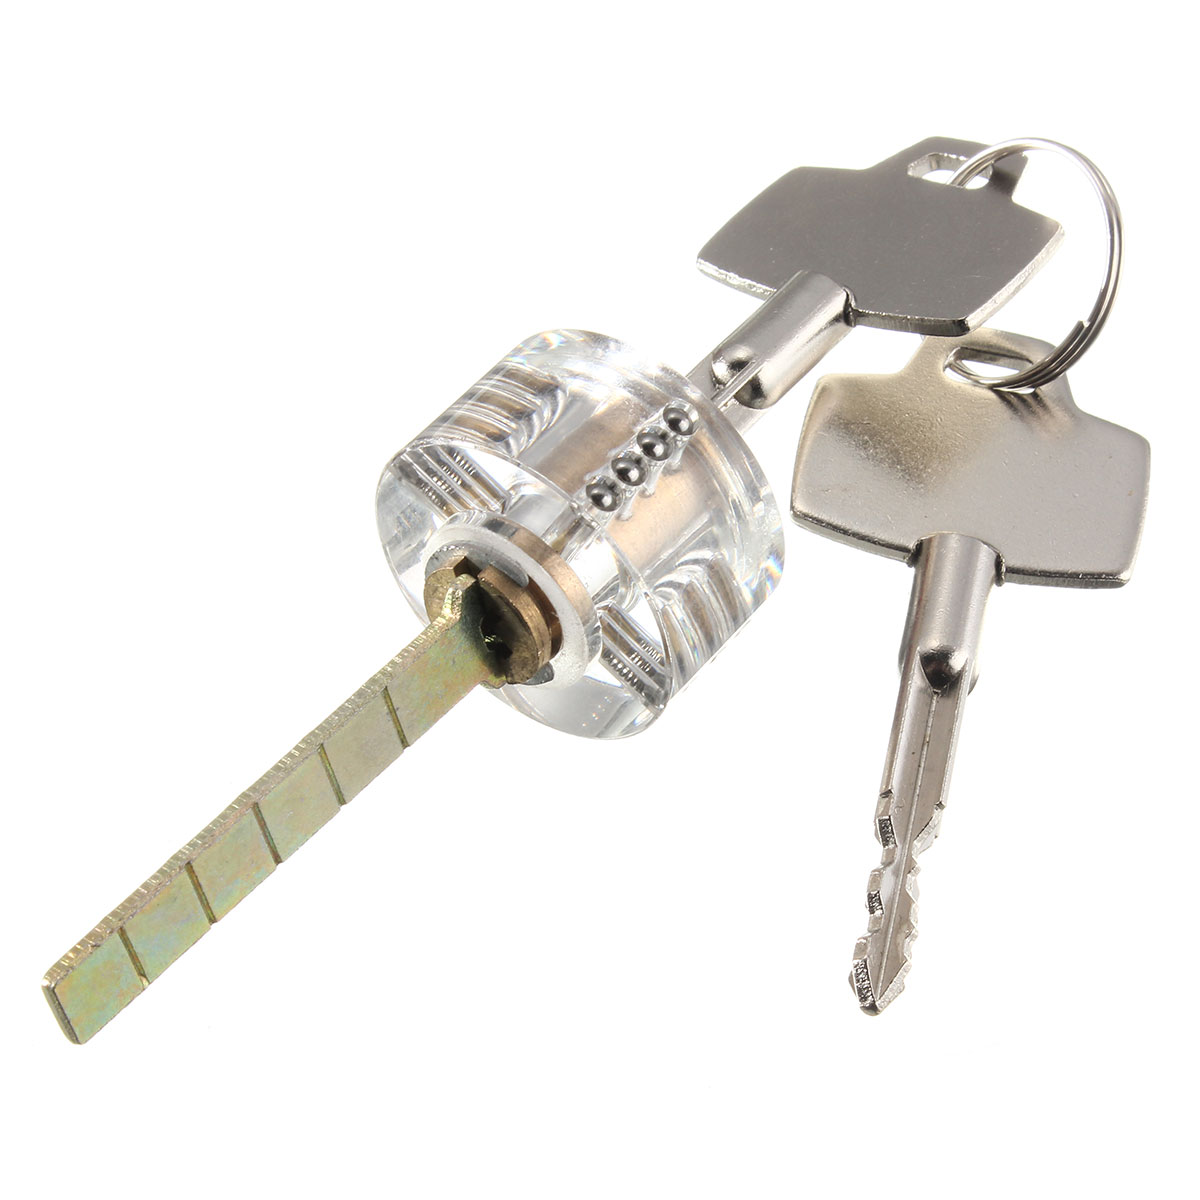 SPARTA visible pin cylinder tubular lock for Locksmith Practice Training Beginner